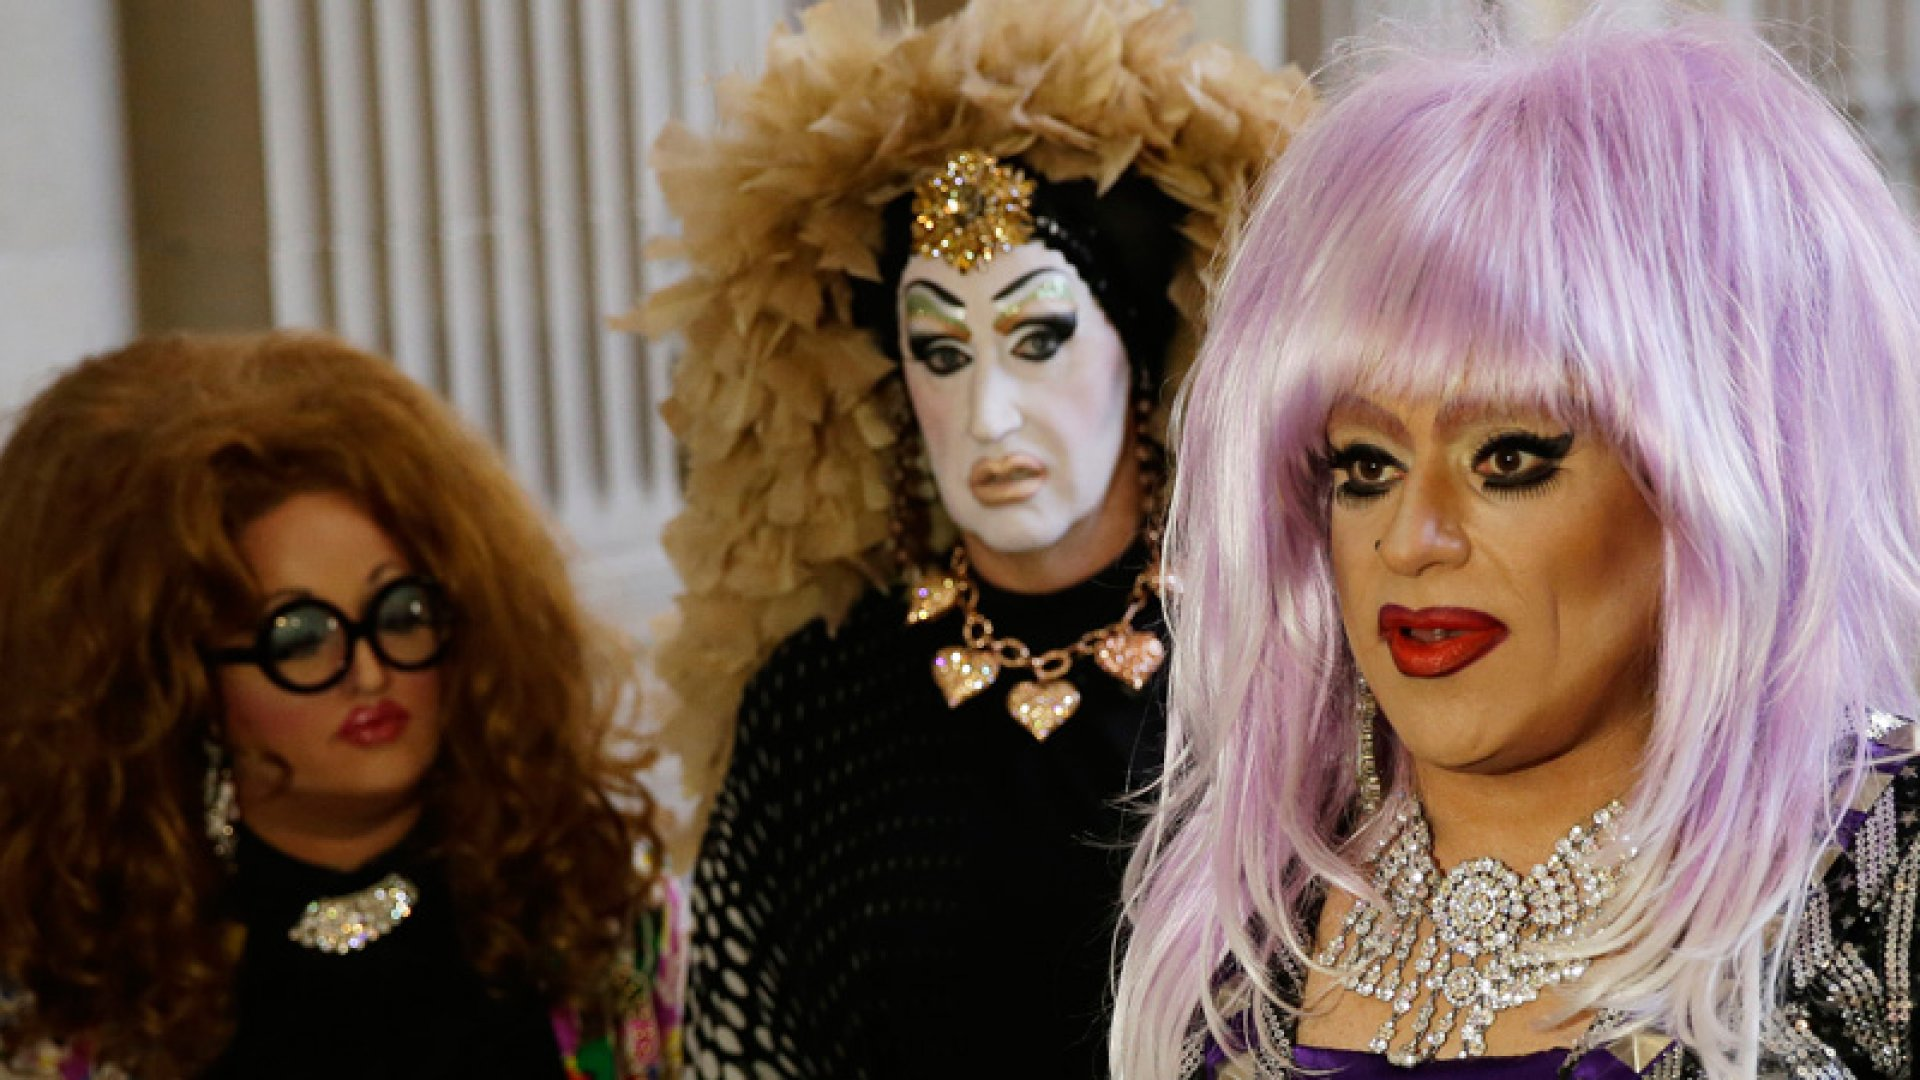 Drag queens from left, Lil Ms. Hot Mess, Sister Roma, and Heklina take turns speaking about their battle with Facebook during a news conference at City Hall Wednesday, Sept. 17, 2014, in San Francisco, California.